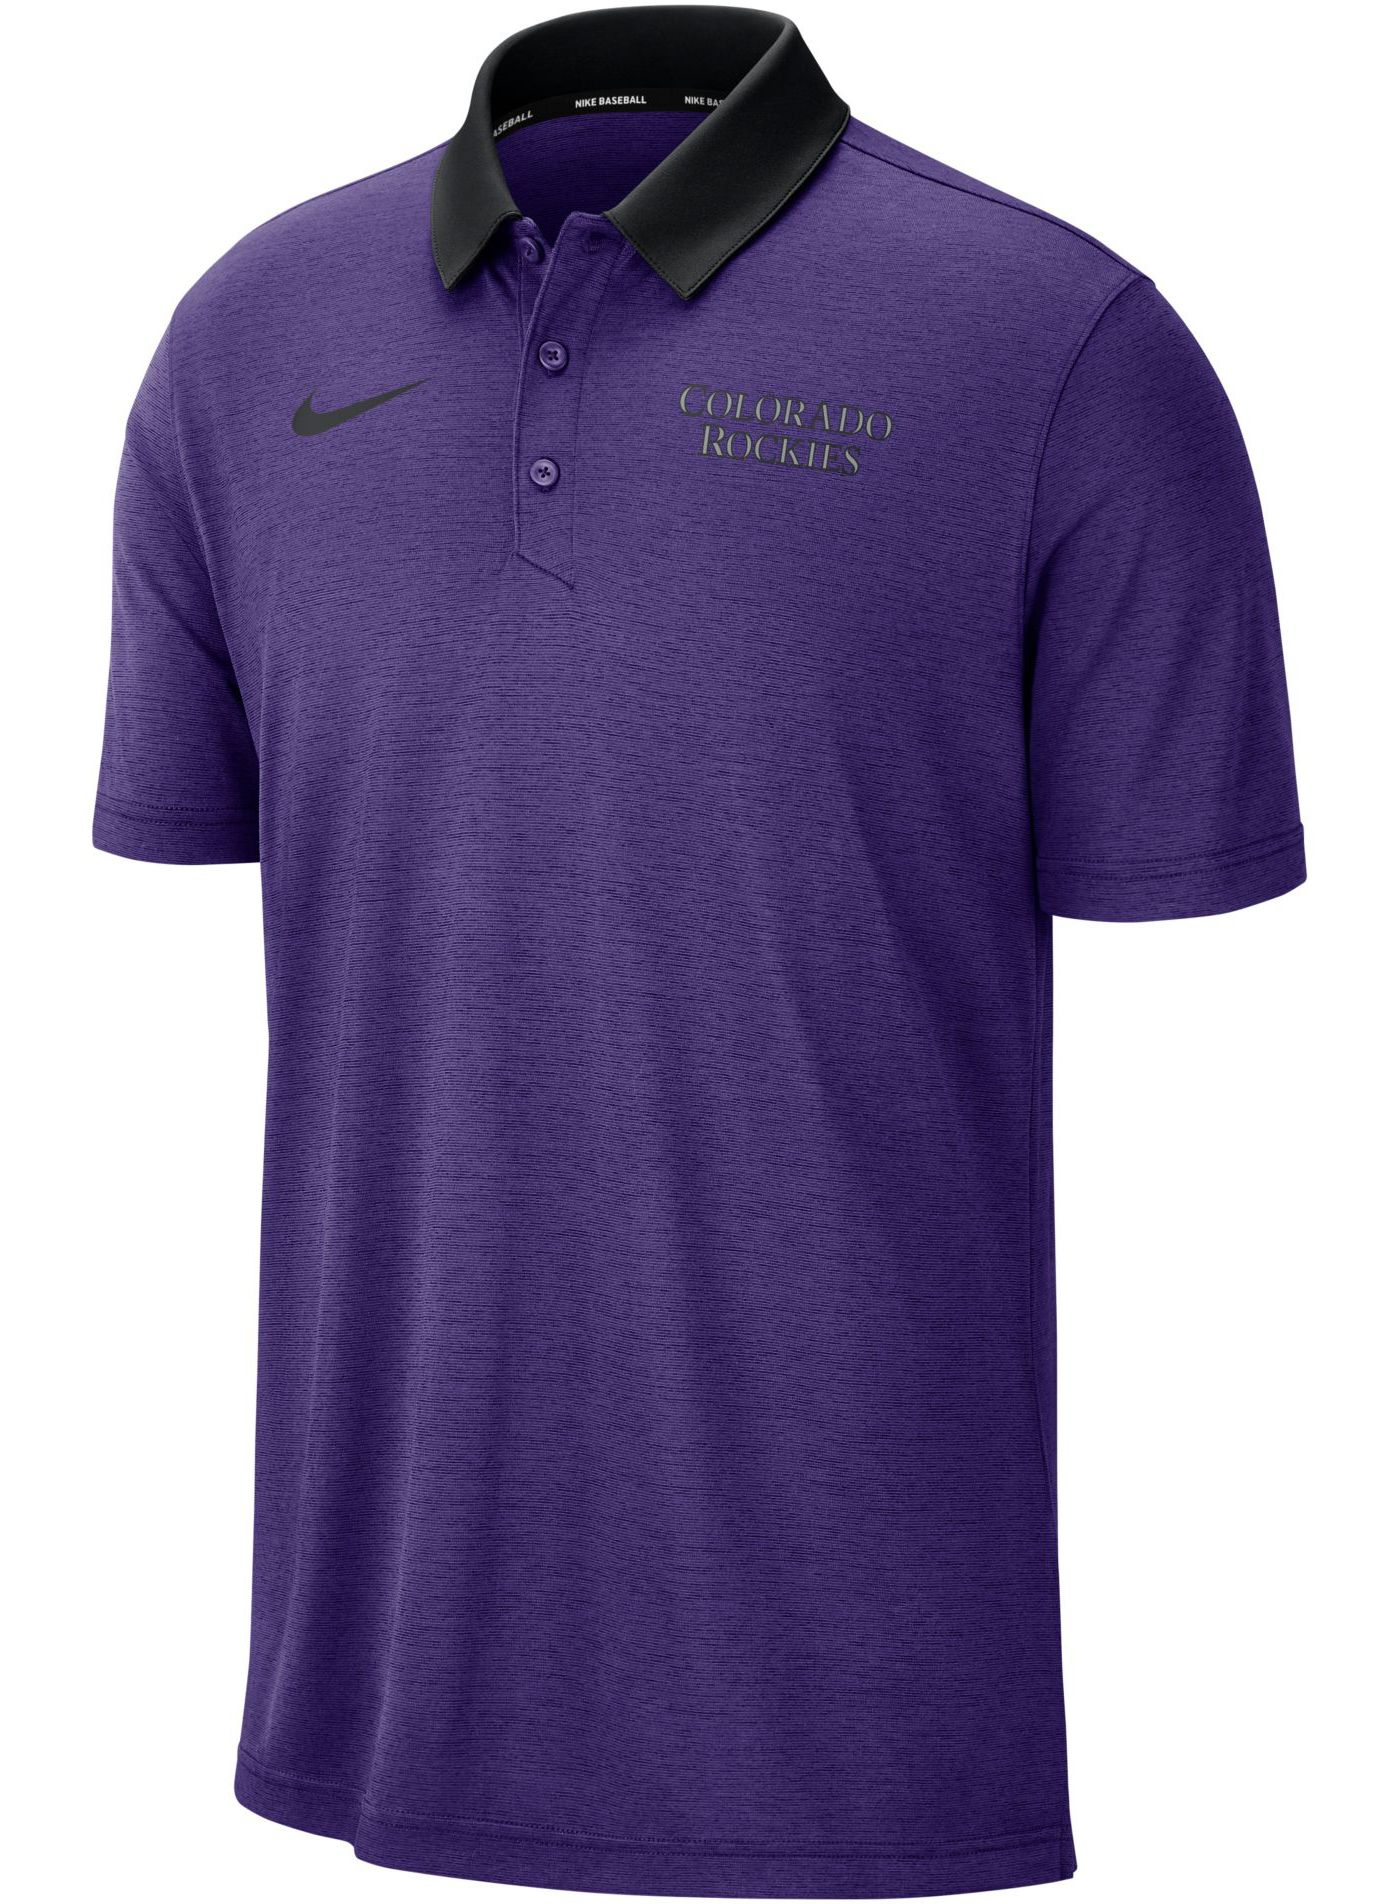 Nike Men's Colorado Rockies Breathe Polo